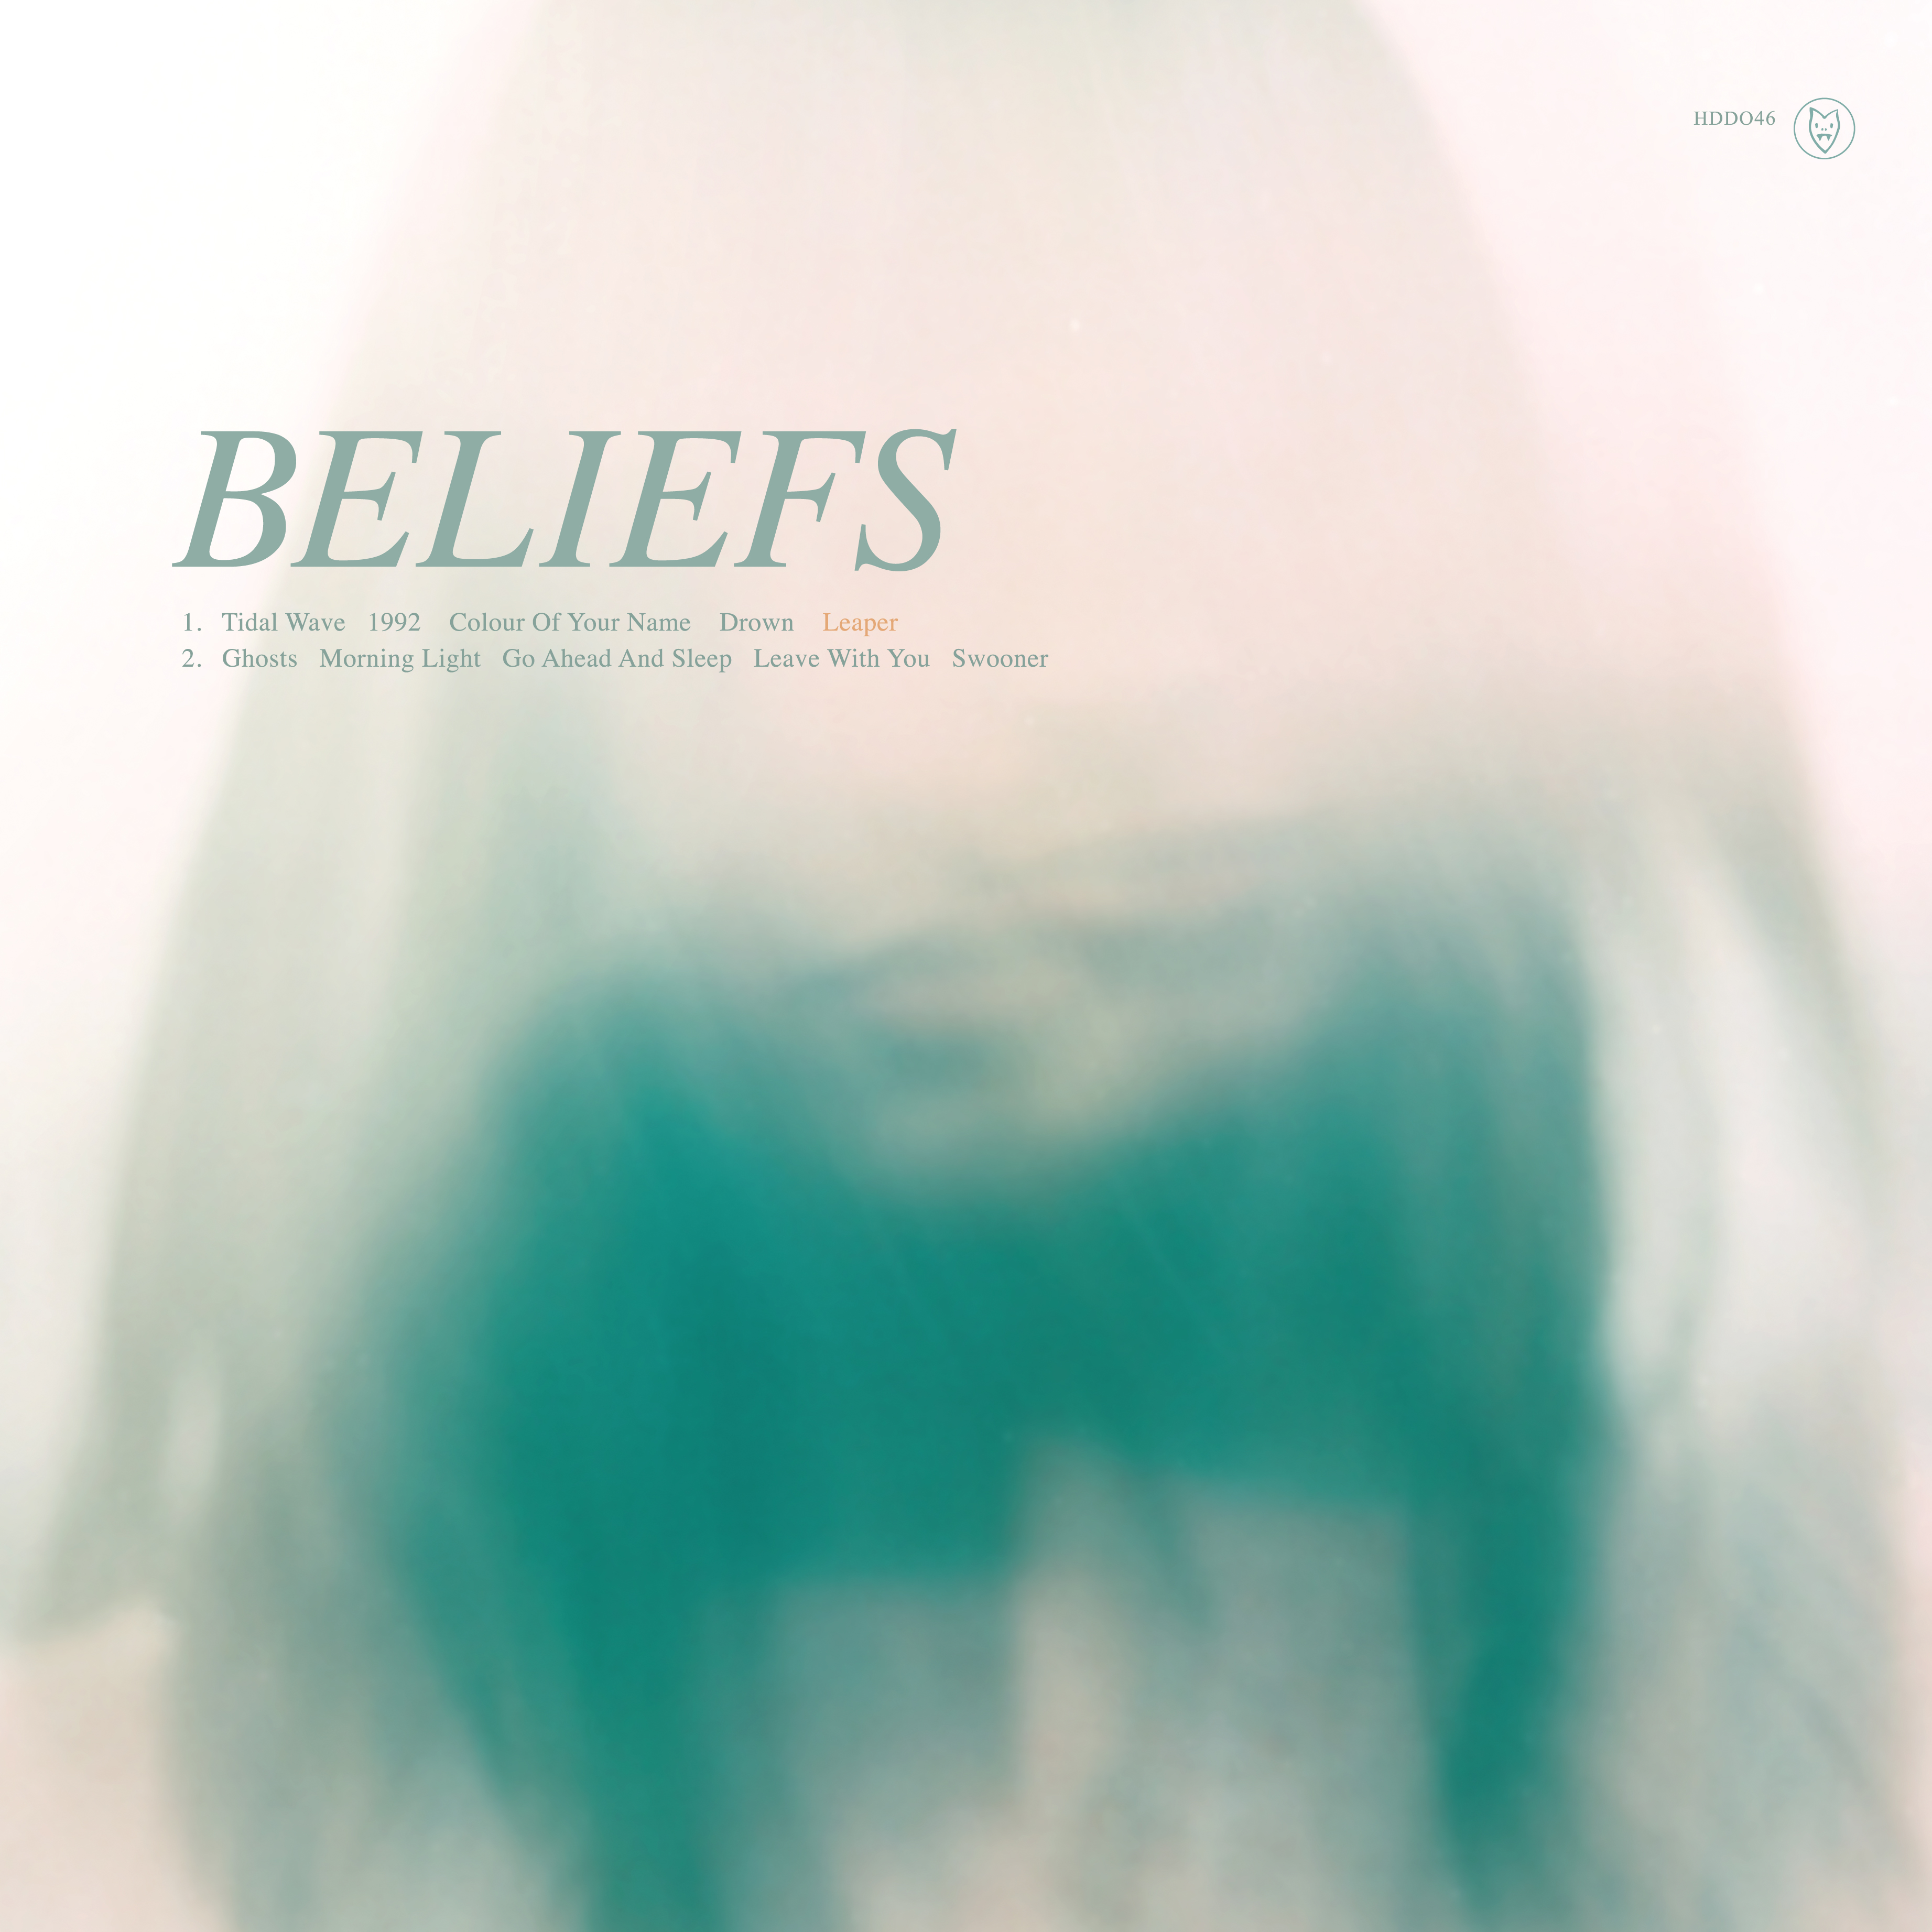 Beliefs new album 'Leaper' review. The band's full length comes out on November 13th via Hand Drawn Dracula.